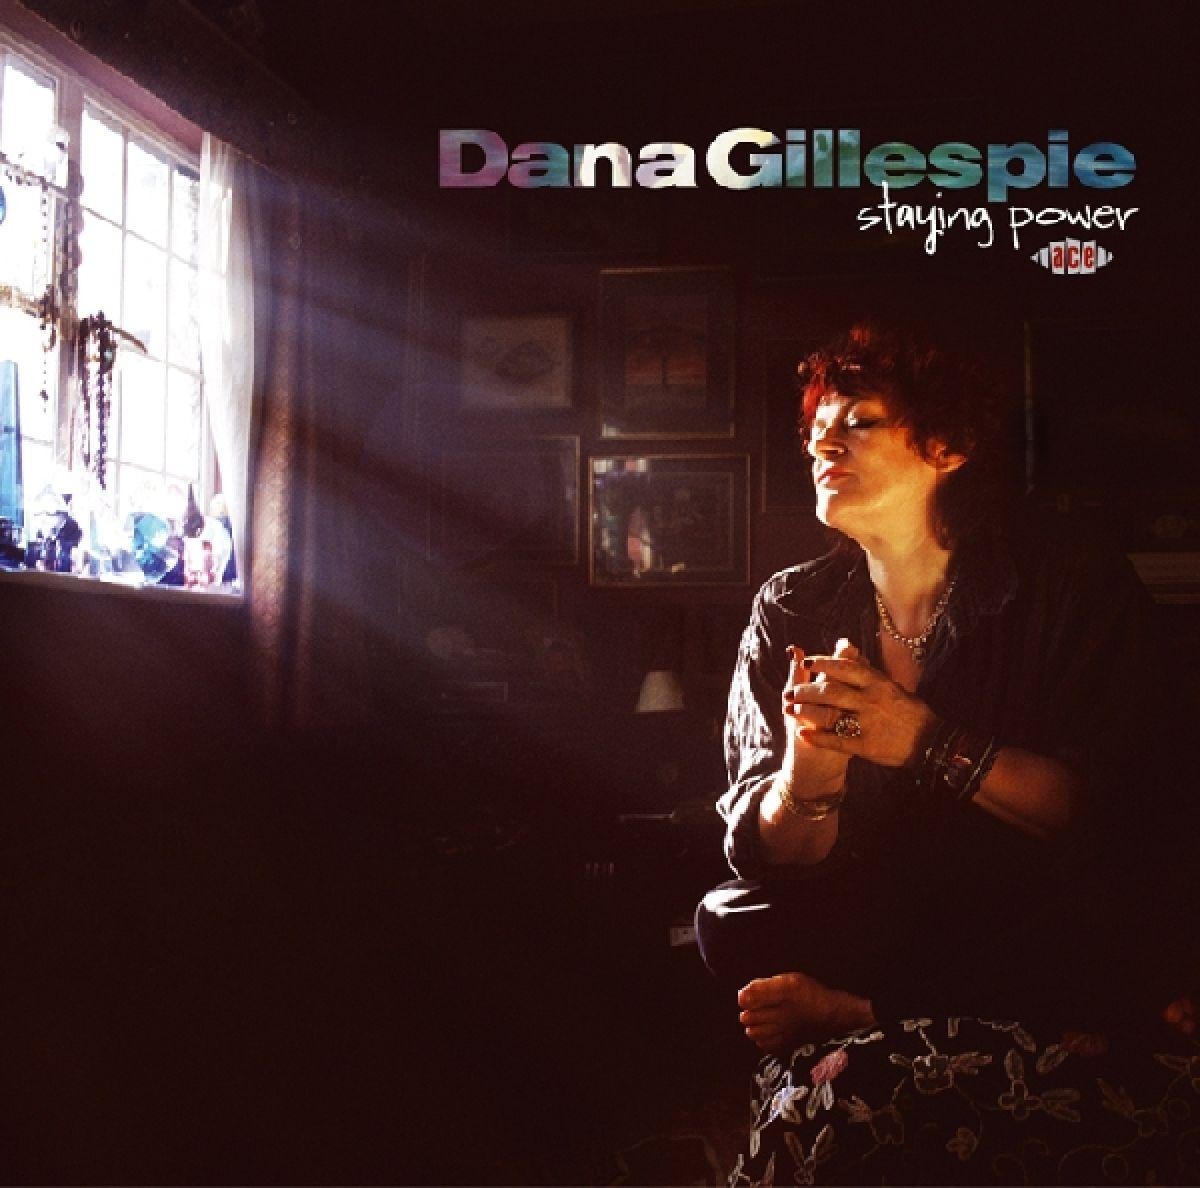 Staying Power - Dana Gillespie - Musik - ACE - 0029667189125 - May 29, 2003